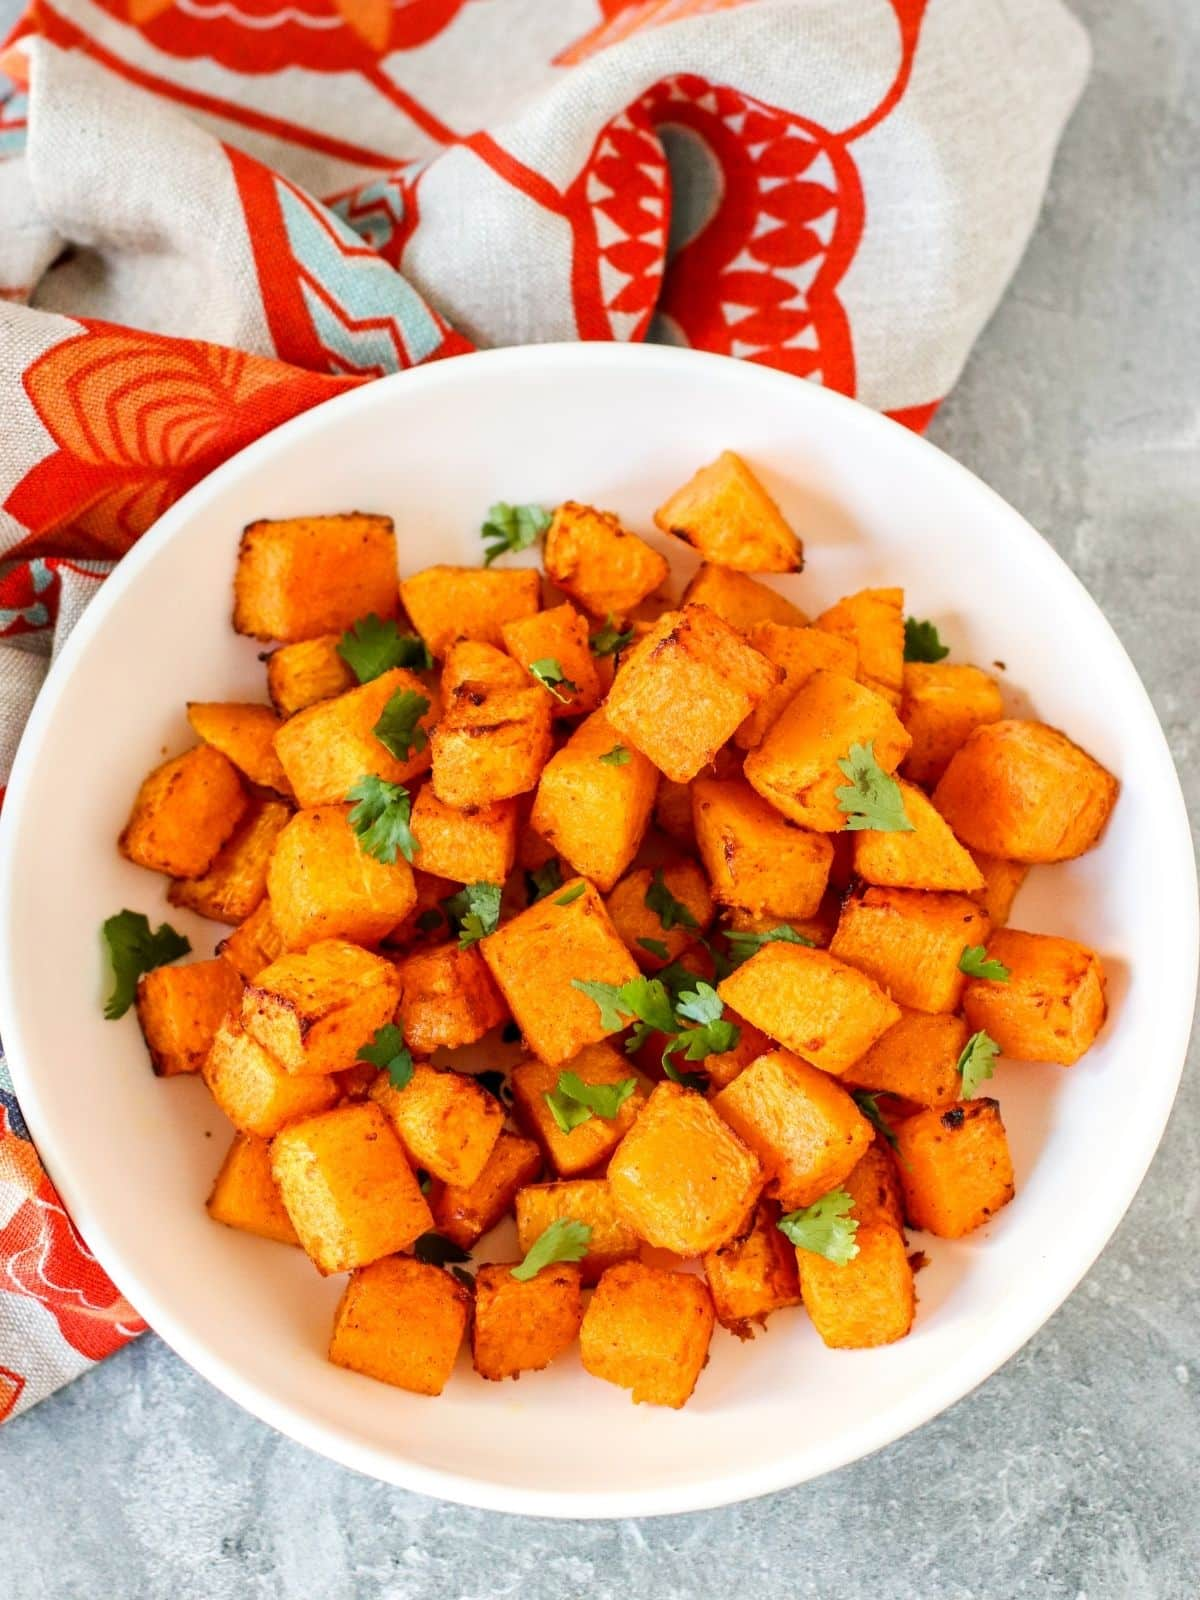 Serving bowl of air fried butternut squash garnished with fresh cilantro